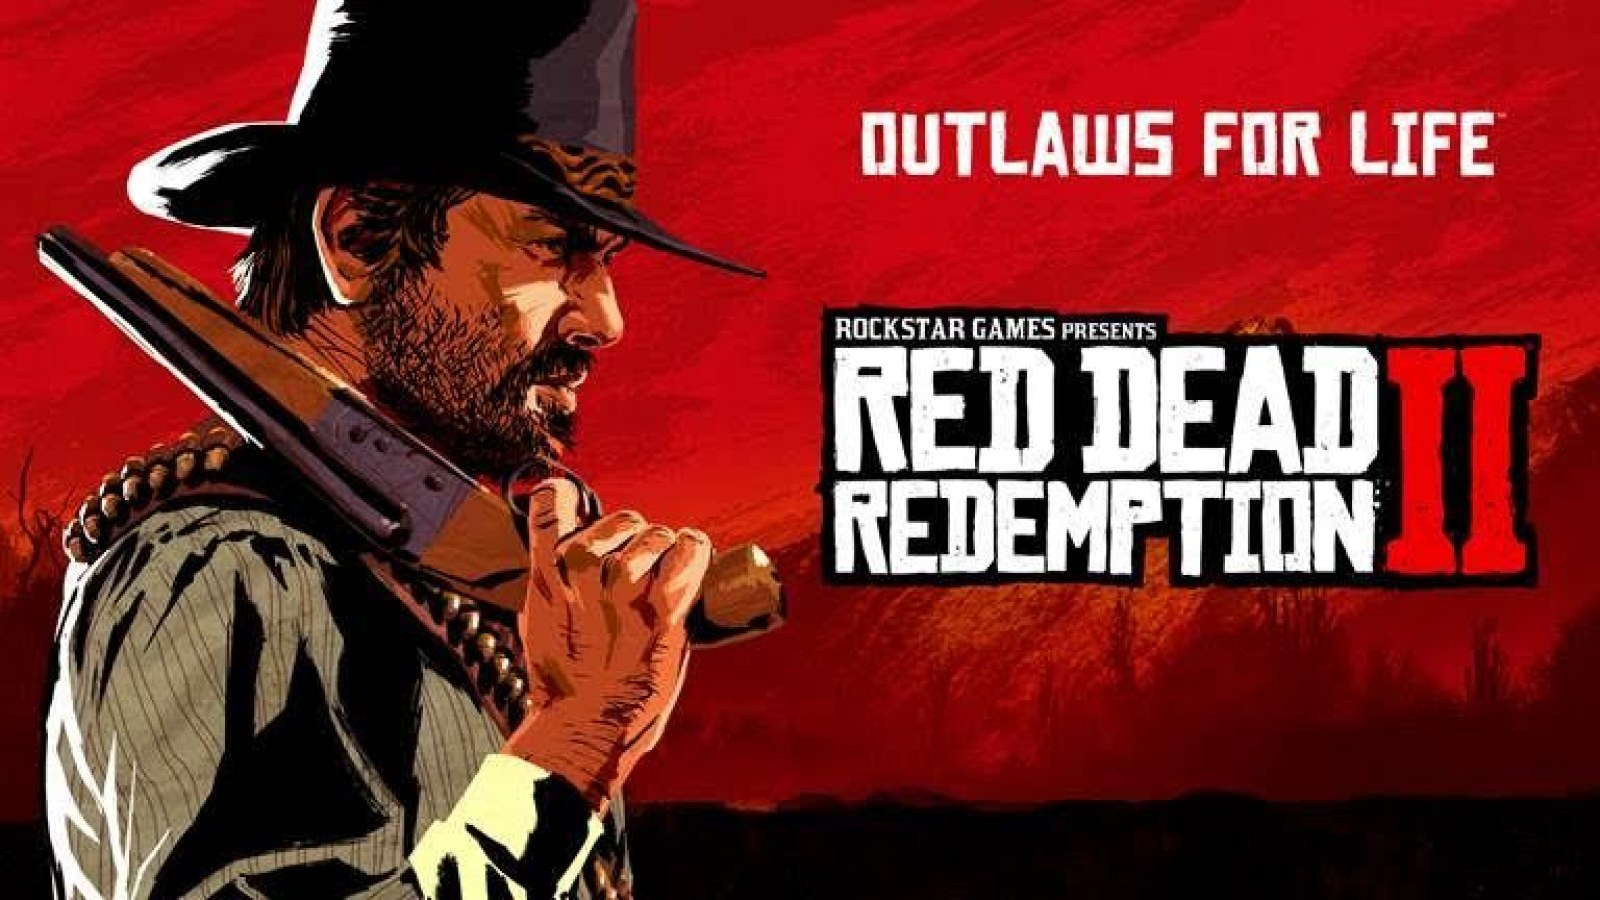 Red Dead Redemption 2 Launch Trailer Gives Final Look At